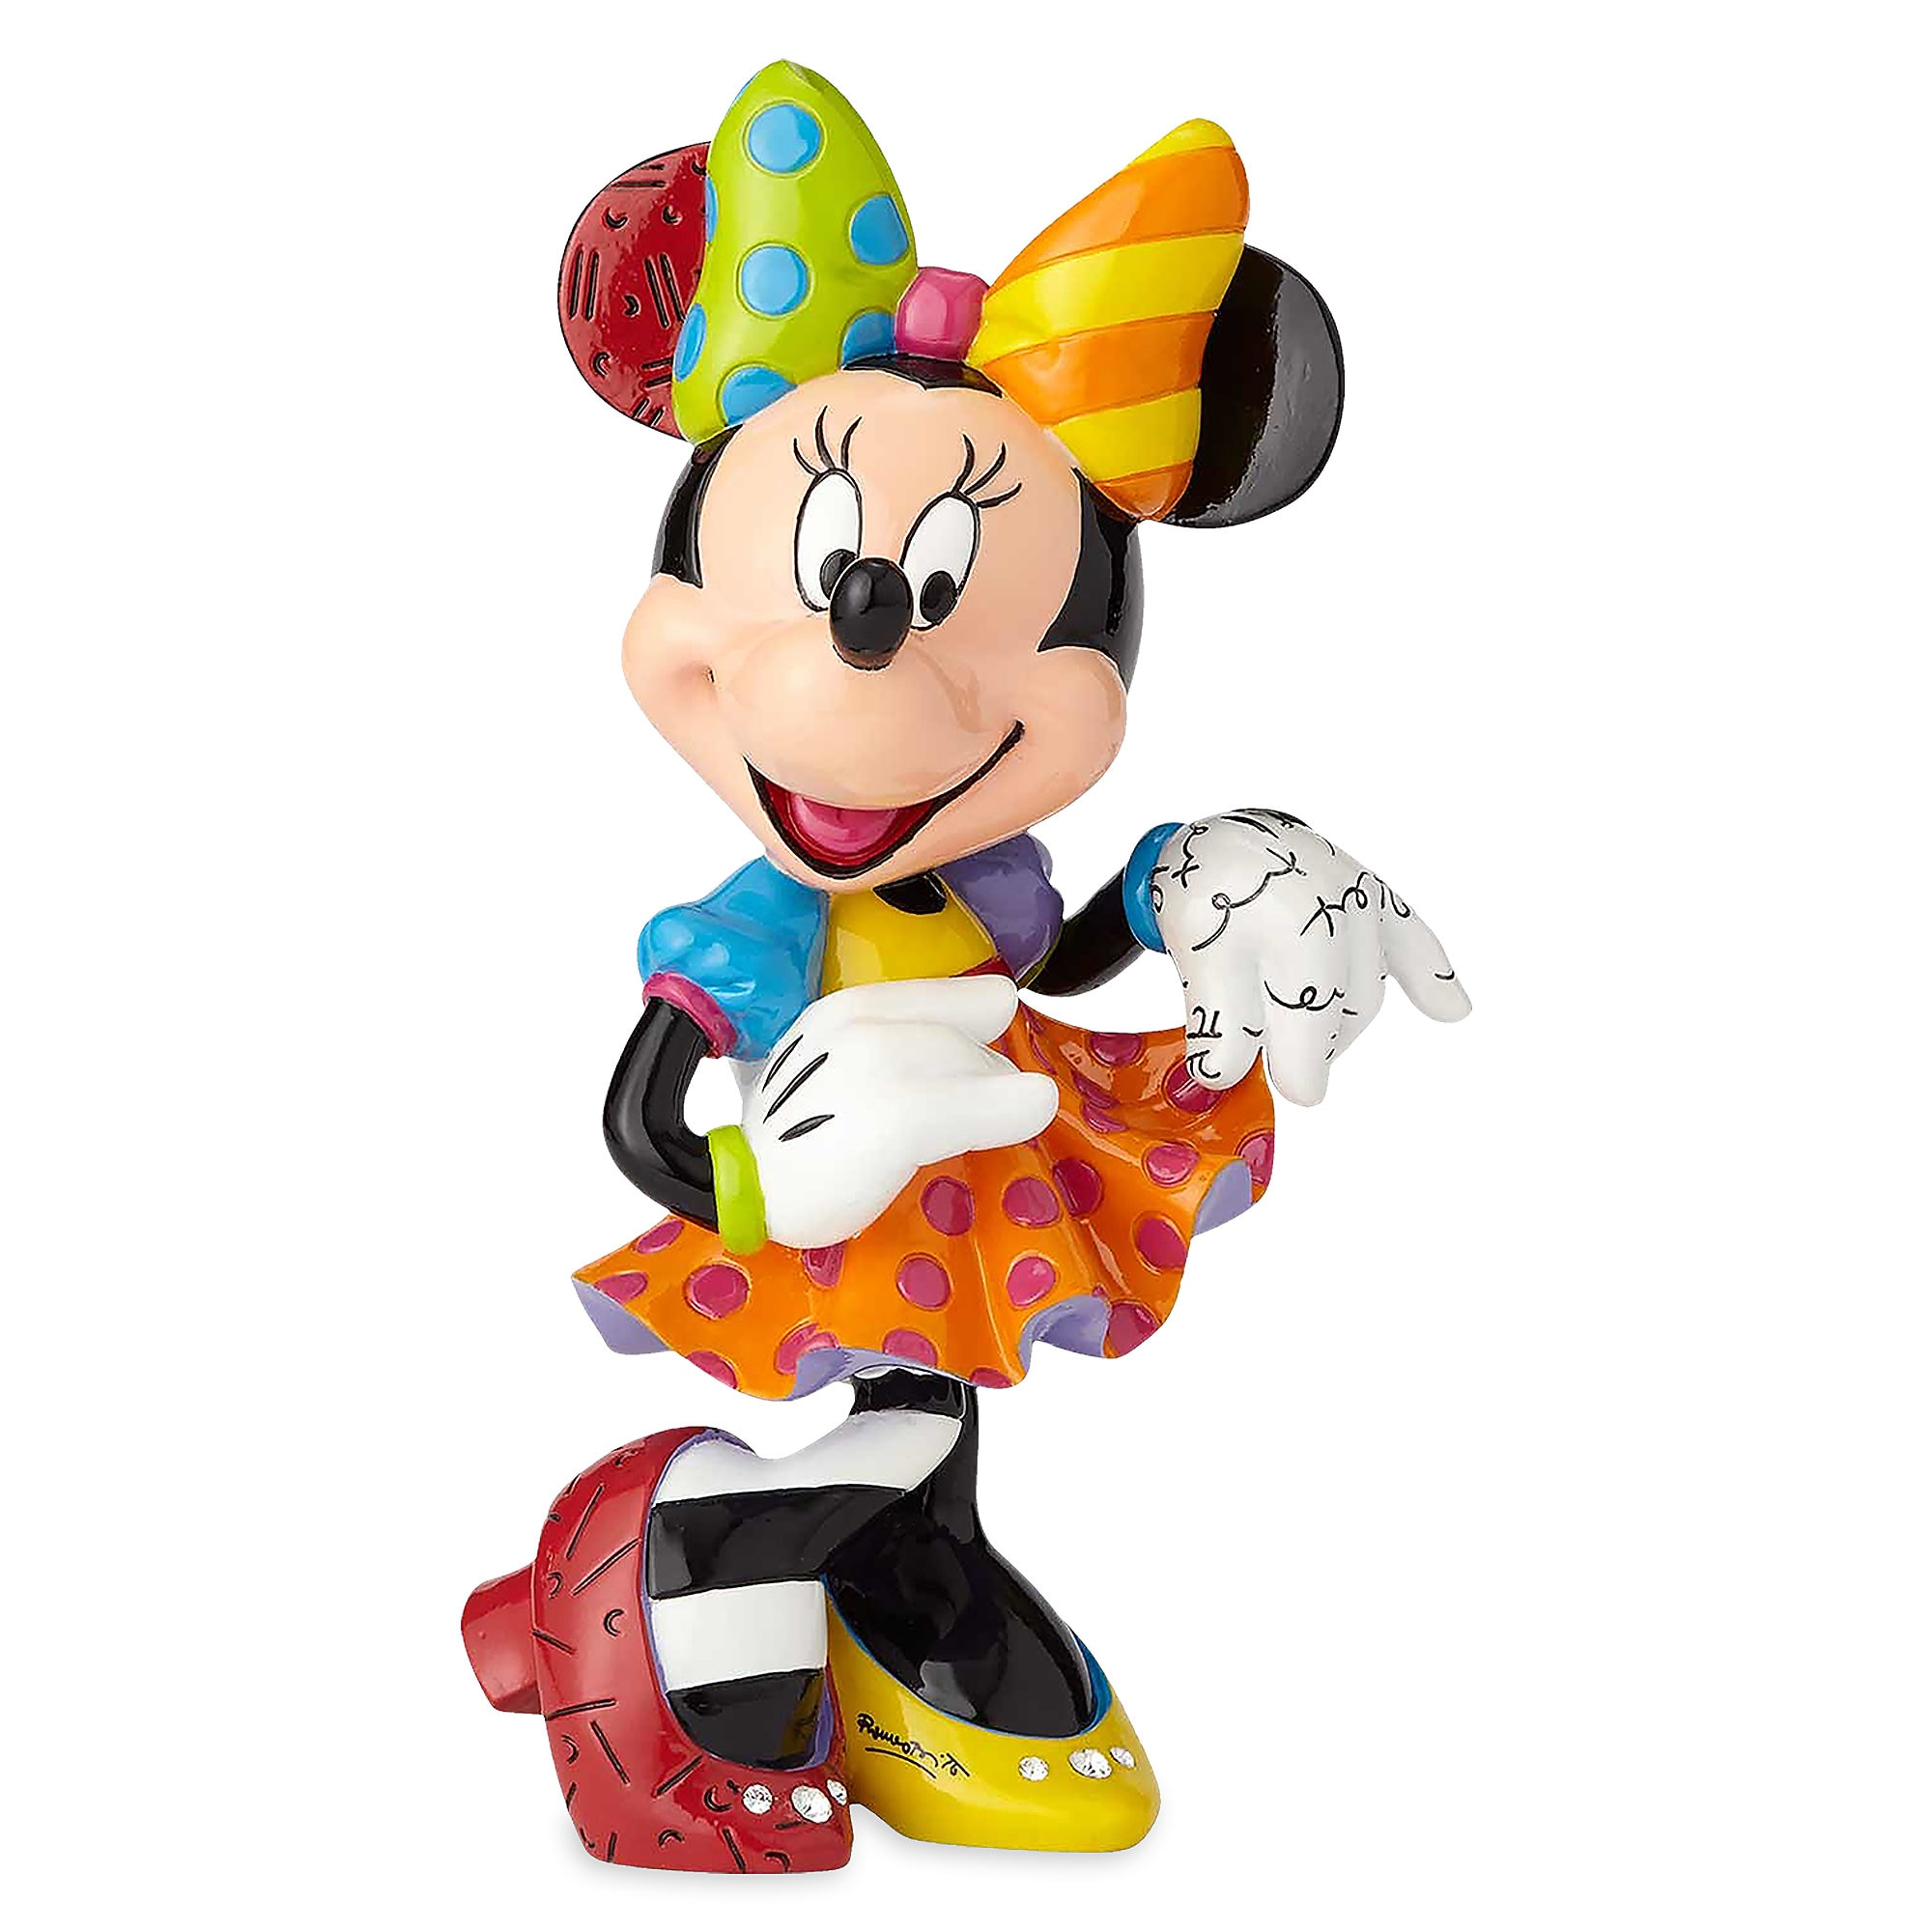 Minnie Mouse Bling Figure by Britto - 10 1/4'' H